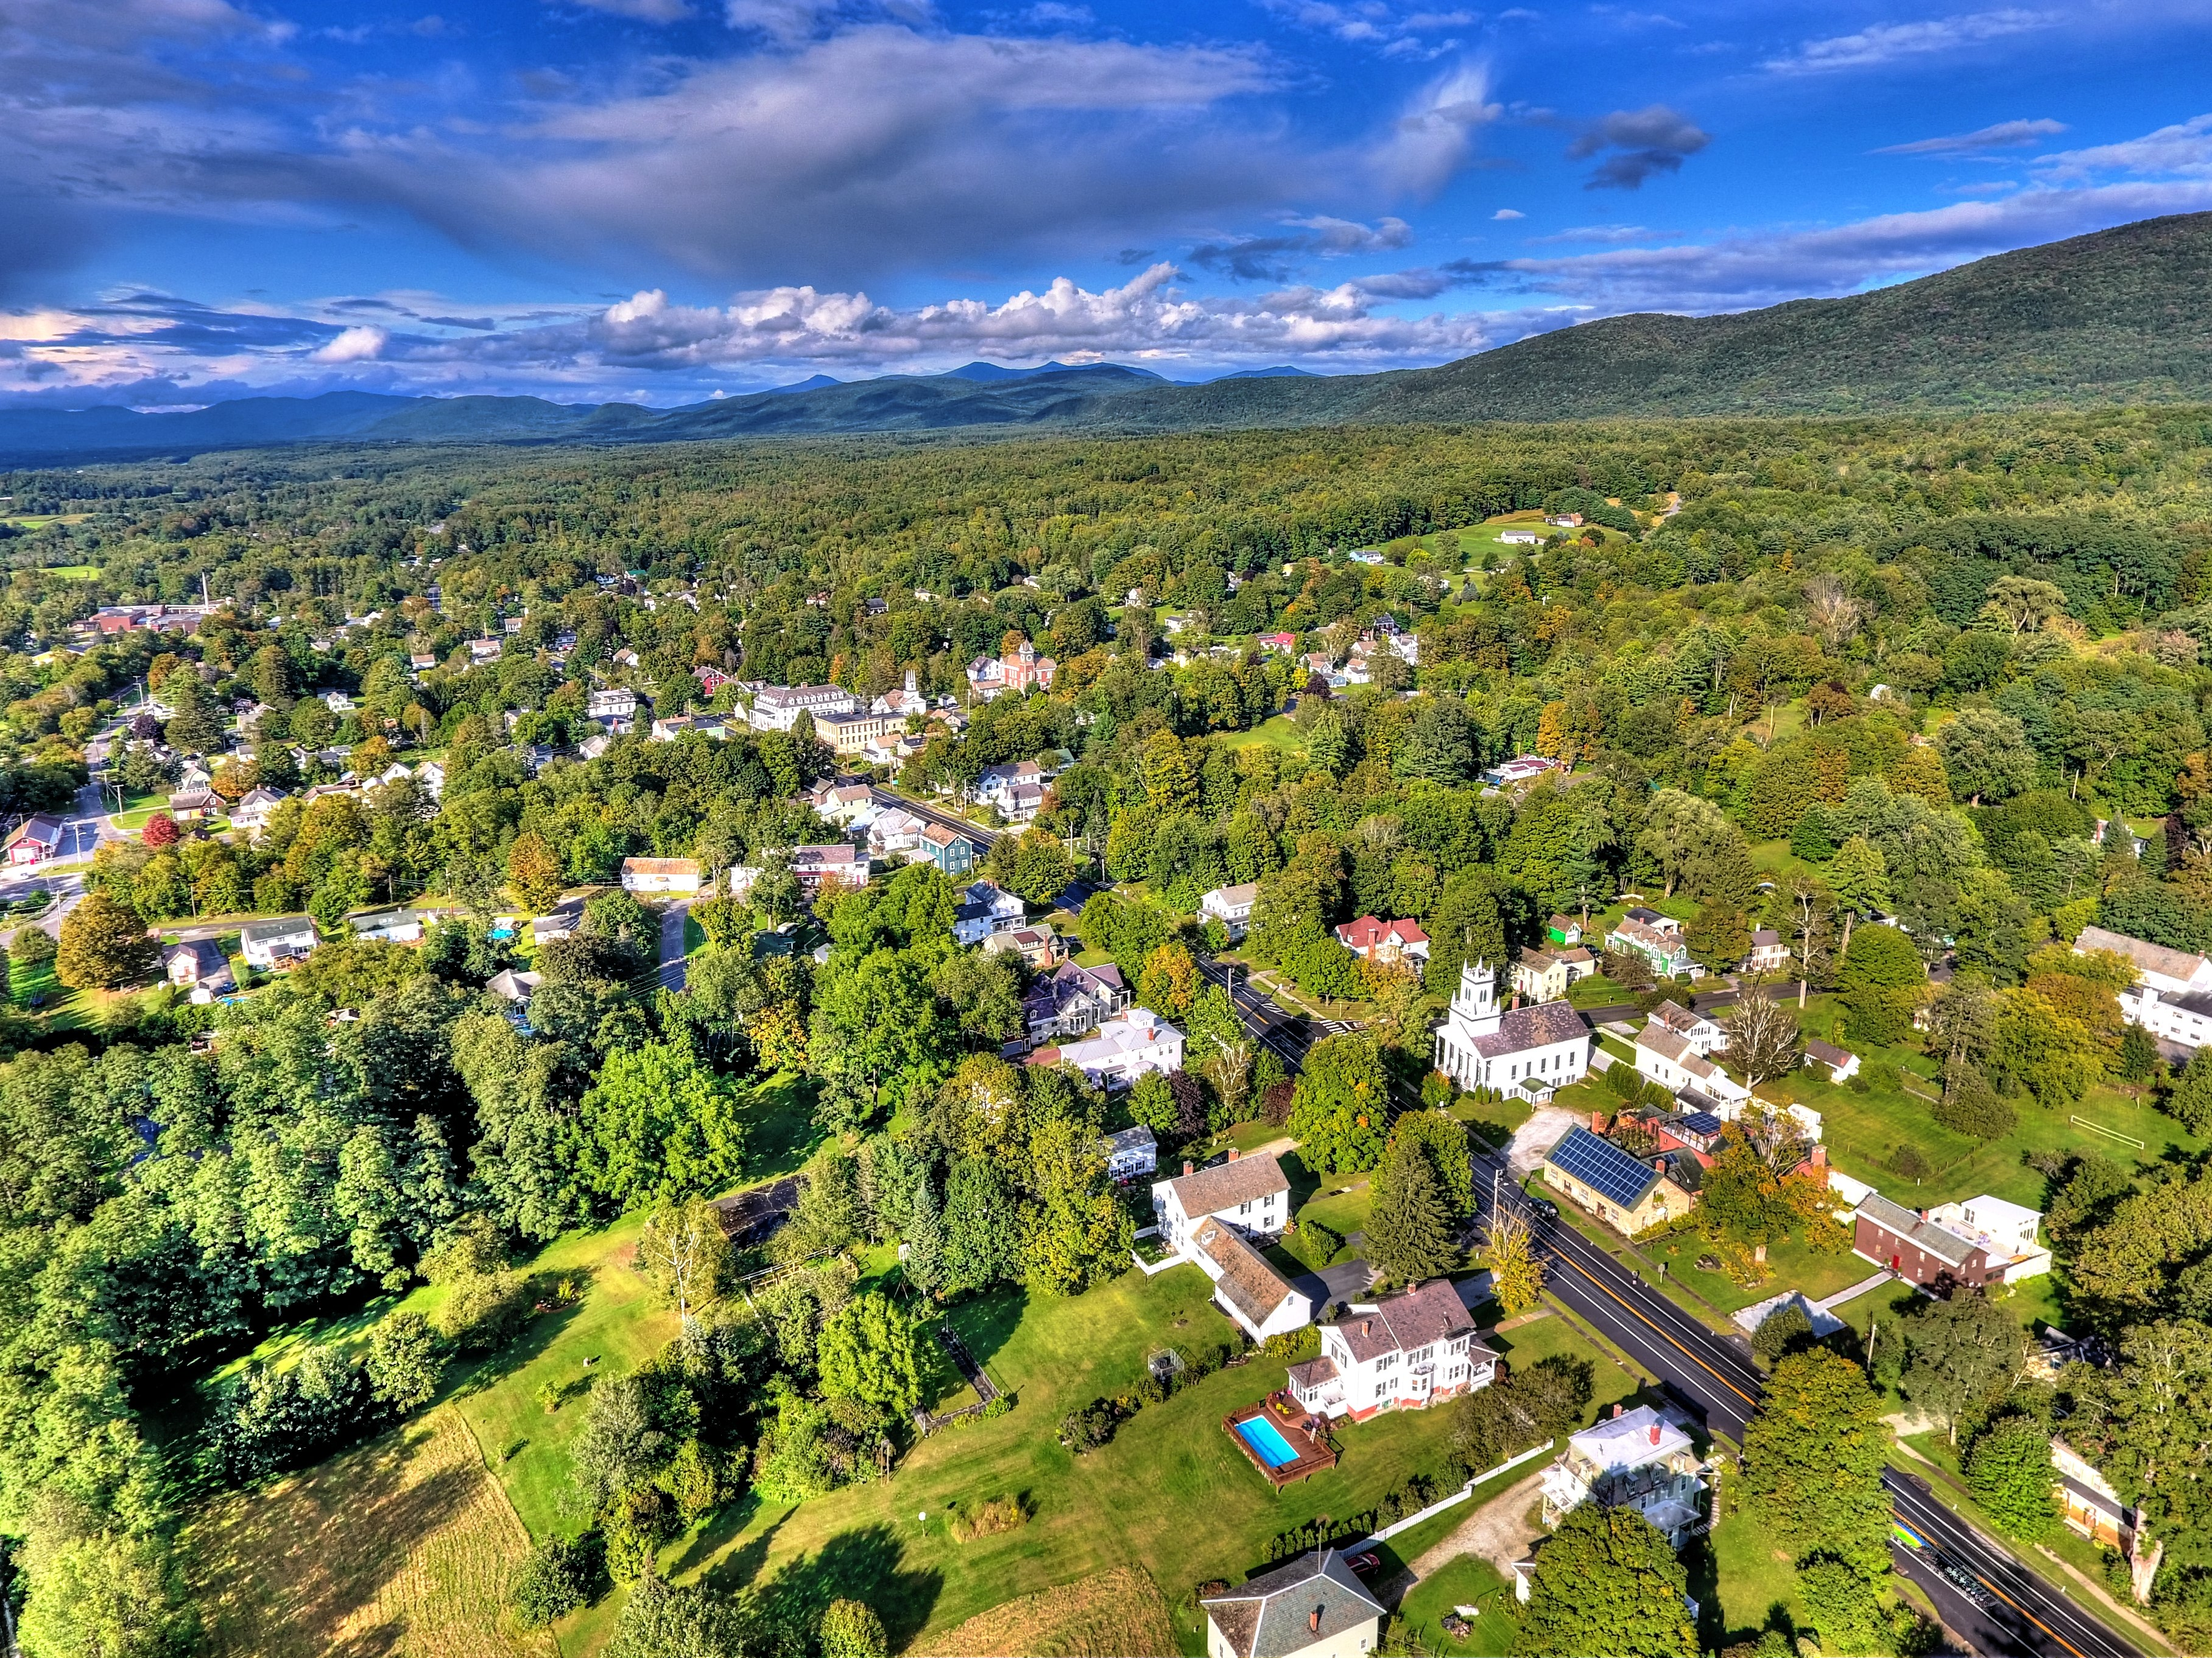 Community Events Town of Wallingford, VT | Town of Wallingford, VT - Our Community